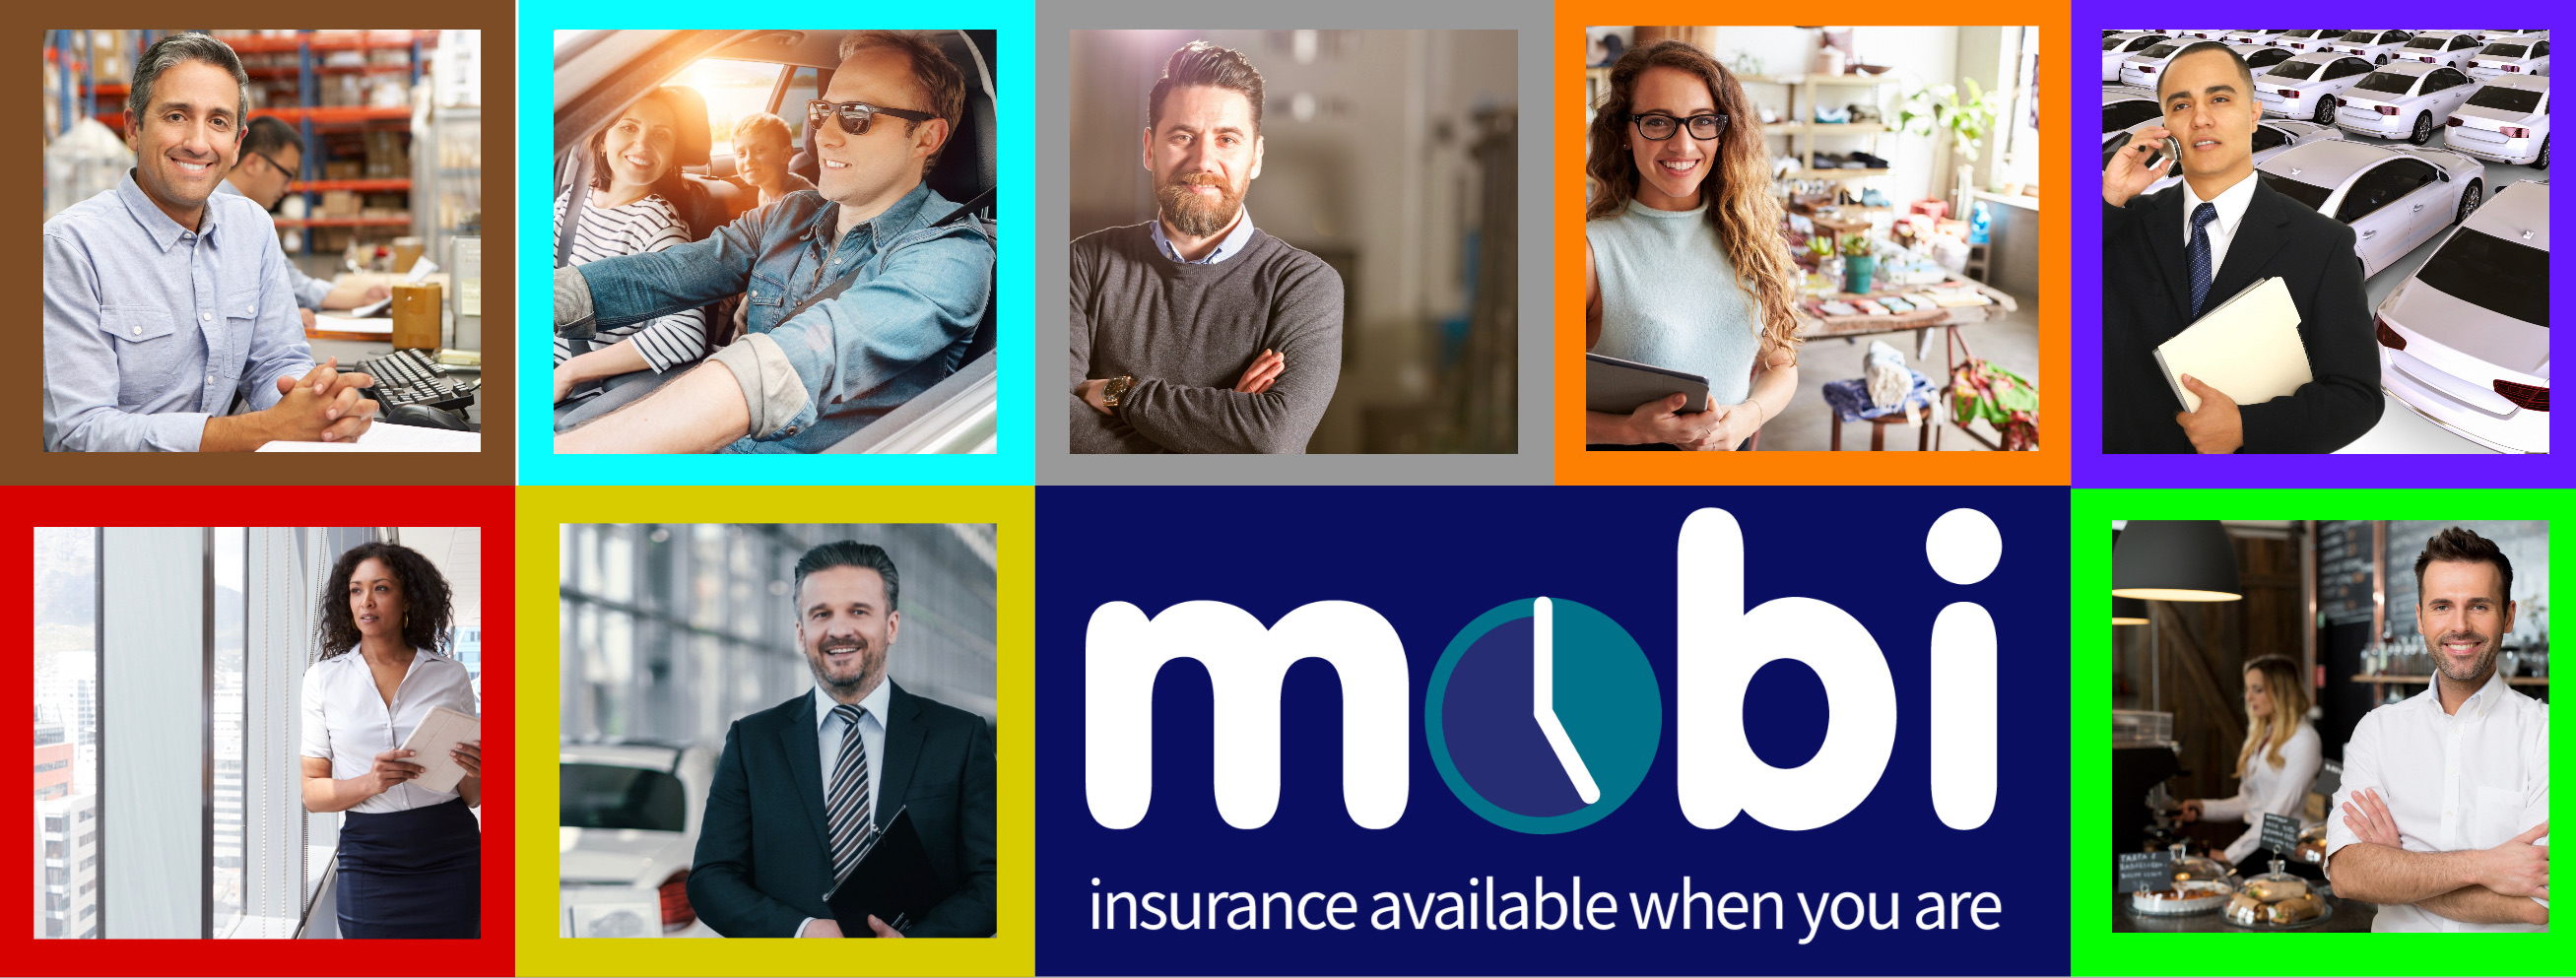 //mobiinsure.co.uk/wp-content/uploads/2014/09/my-own-business-insurance-small-business-insurance.jpg